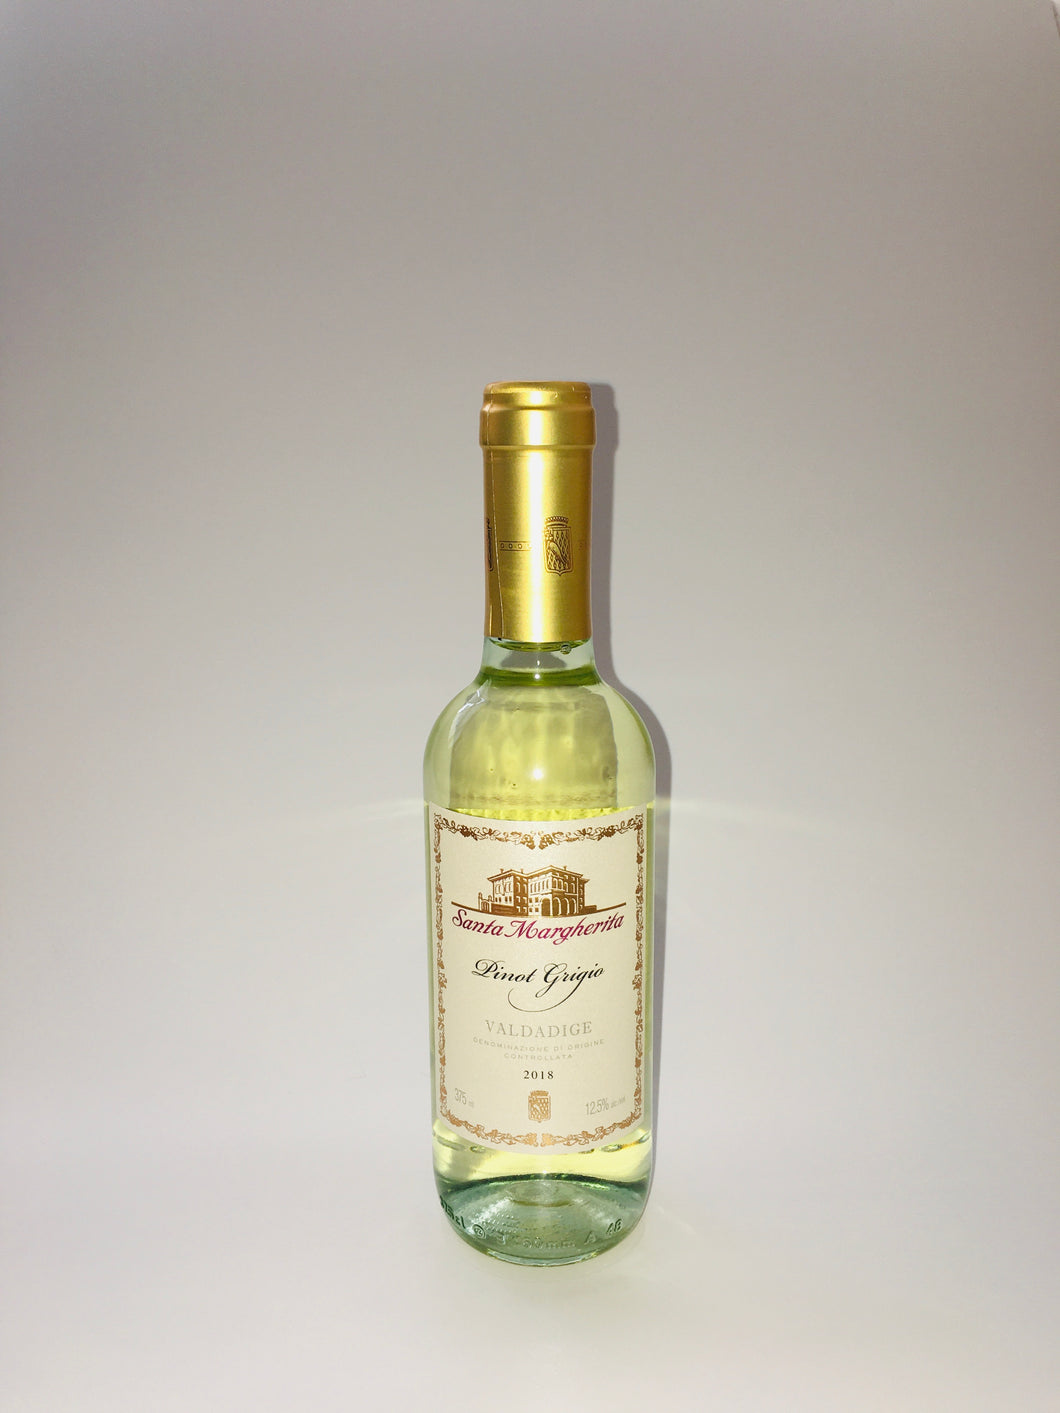 Pinot Grigio, small bottle, 37.5cl